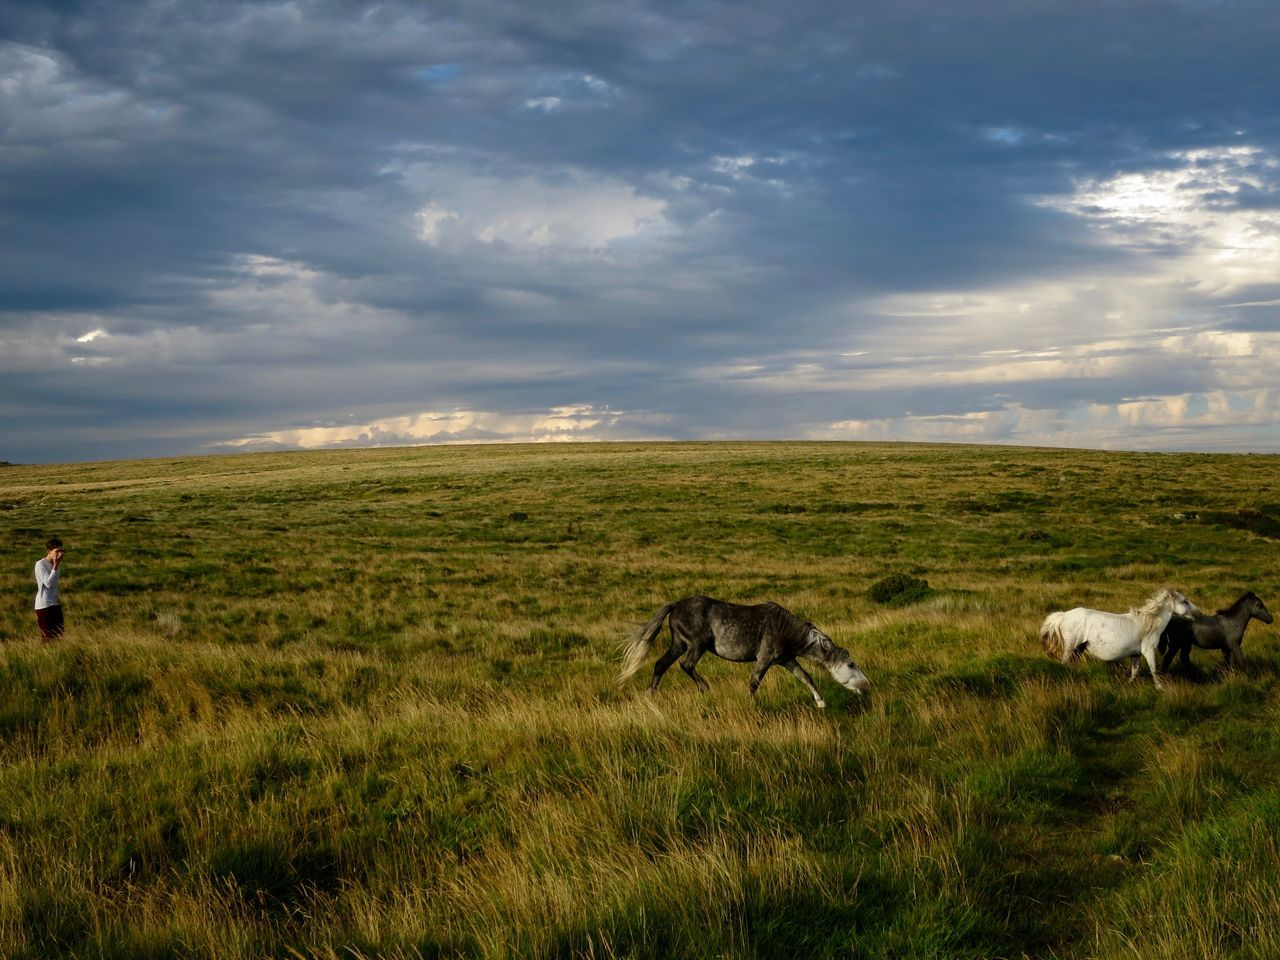 grass, field, cloud - sky, nature, landscape, sky, animal themes, mammal, tranquil scene, beauty in nature, grazing, domestic animals, tranquility, scenics, no people, outdoors, day, green color, growth, tree